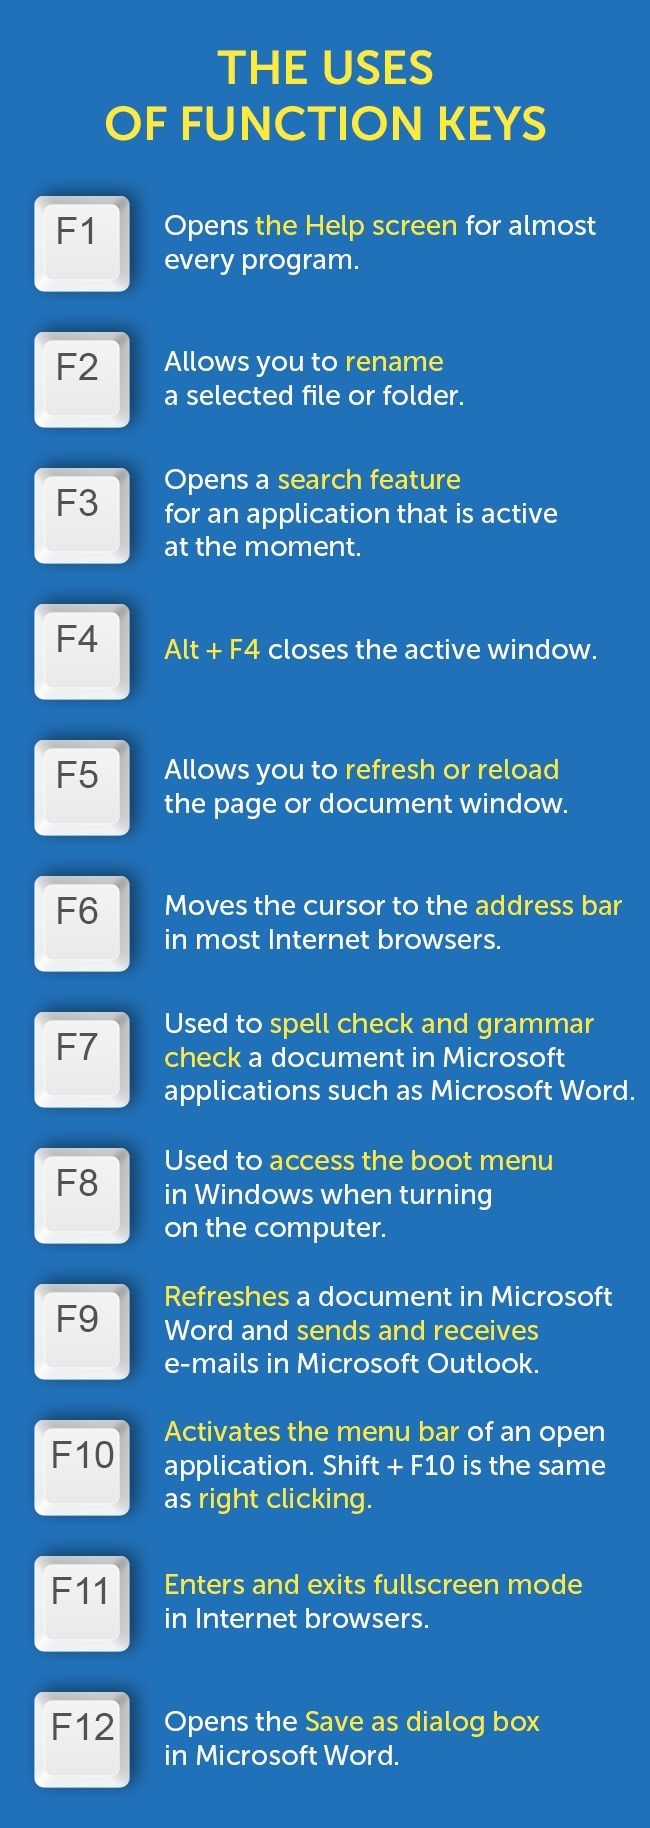 We have all seen function keys before. They are those keys marked F1 to F12 on our computer keyboards. Most of us rarely use these keys when at the computer, but knowing how to use them can be really helpful. Function keys can save you a lot of time if you know how to use …